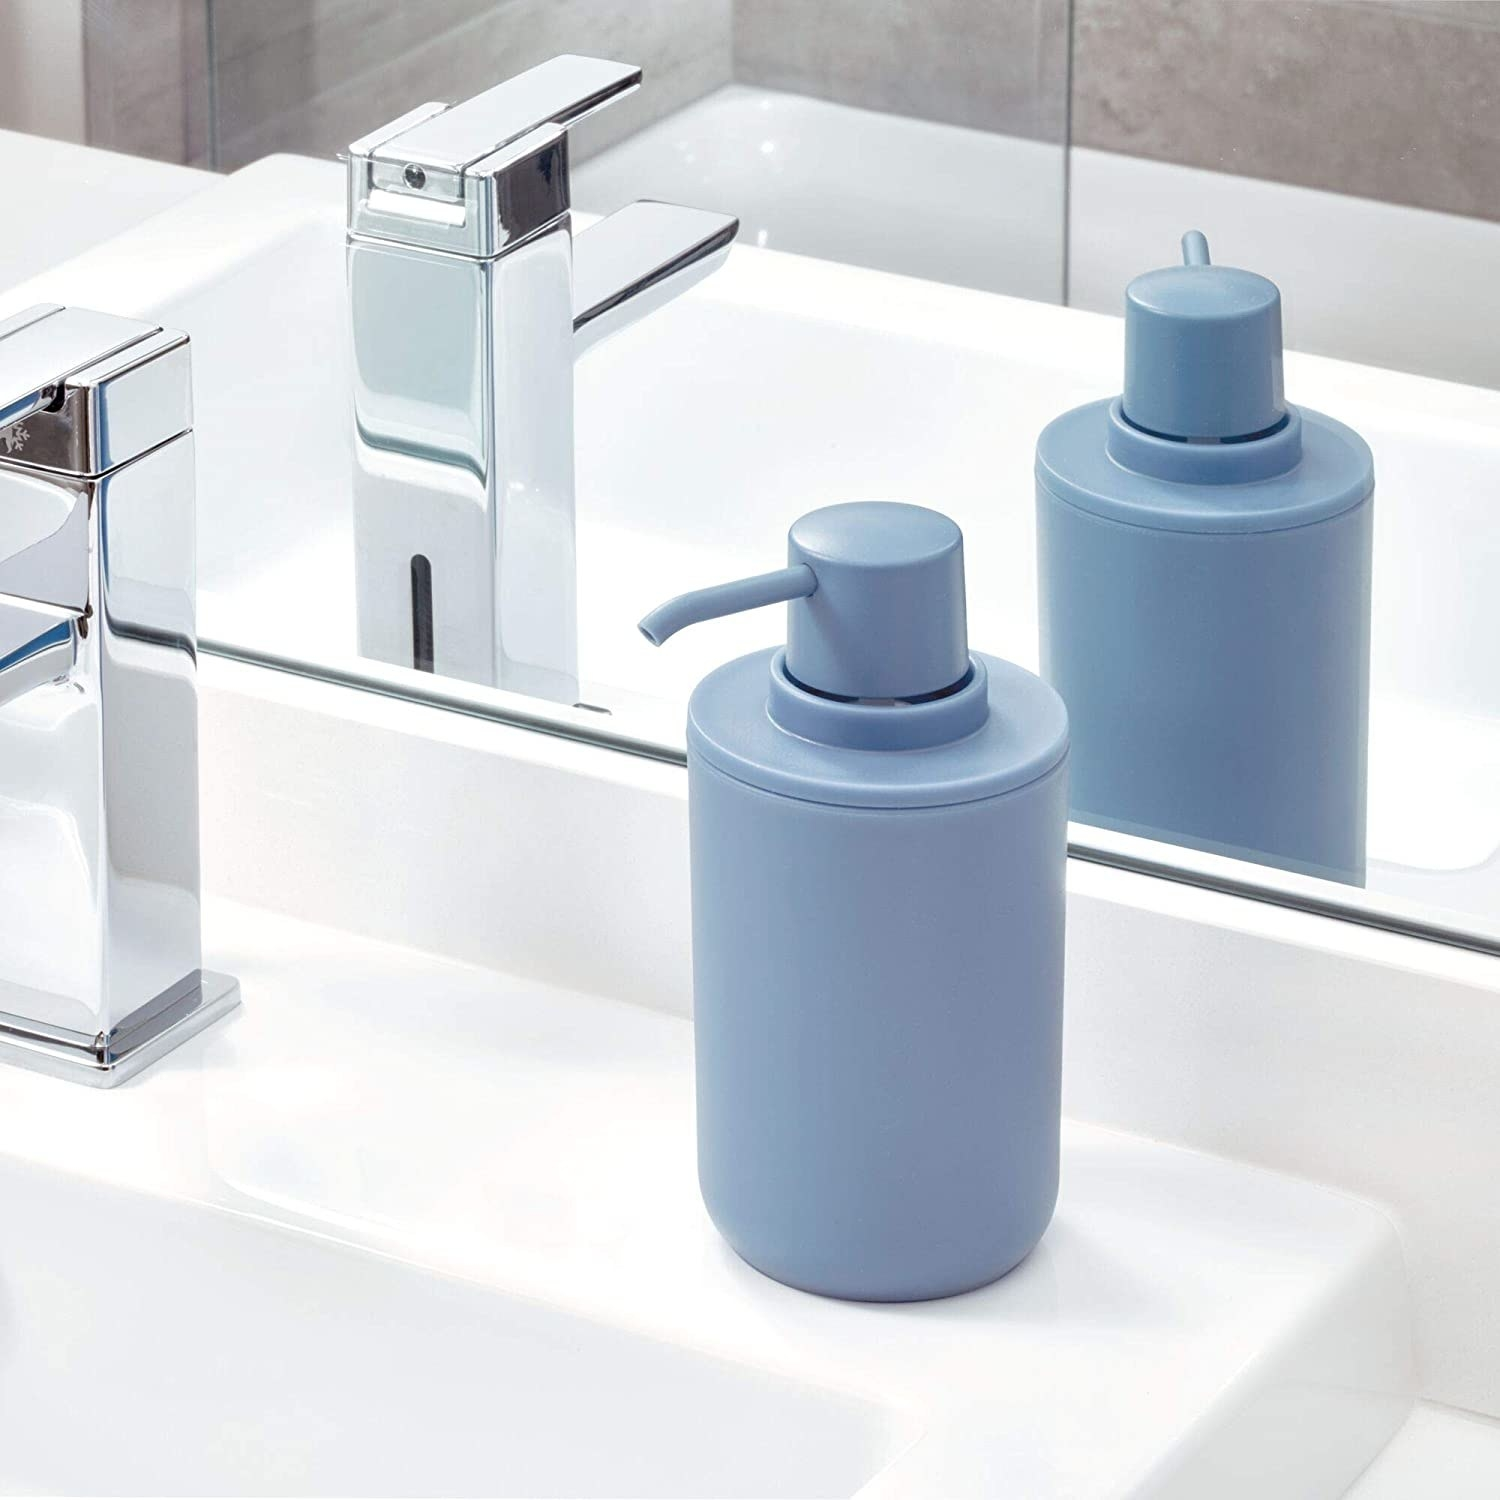 The soap pump on a clean sink